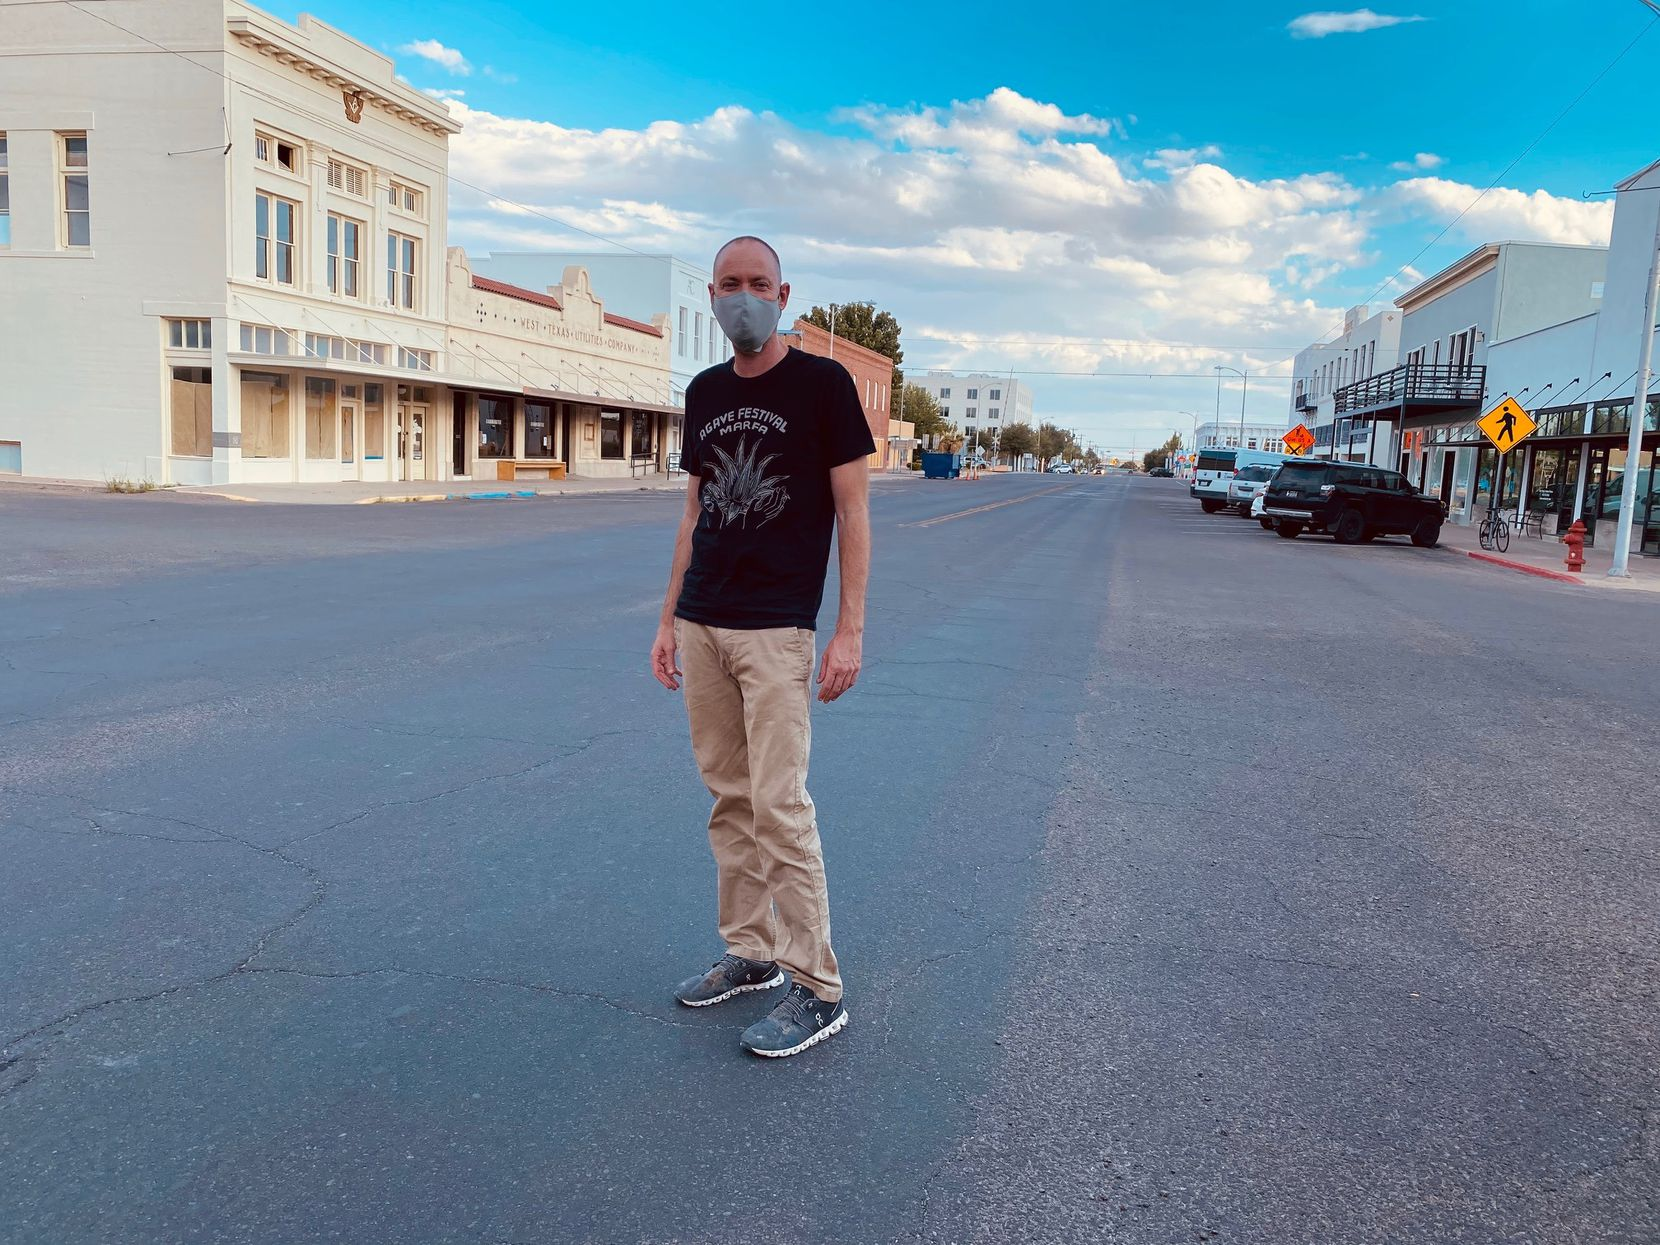 Tim Johnson, a longtime Marfa resident, on the town's Main Street. The town has been hit hard economically by the pandemic.